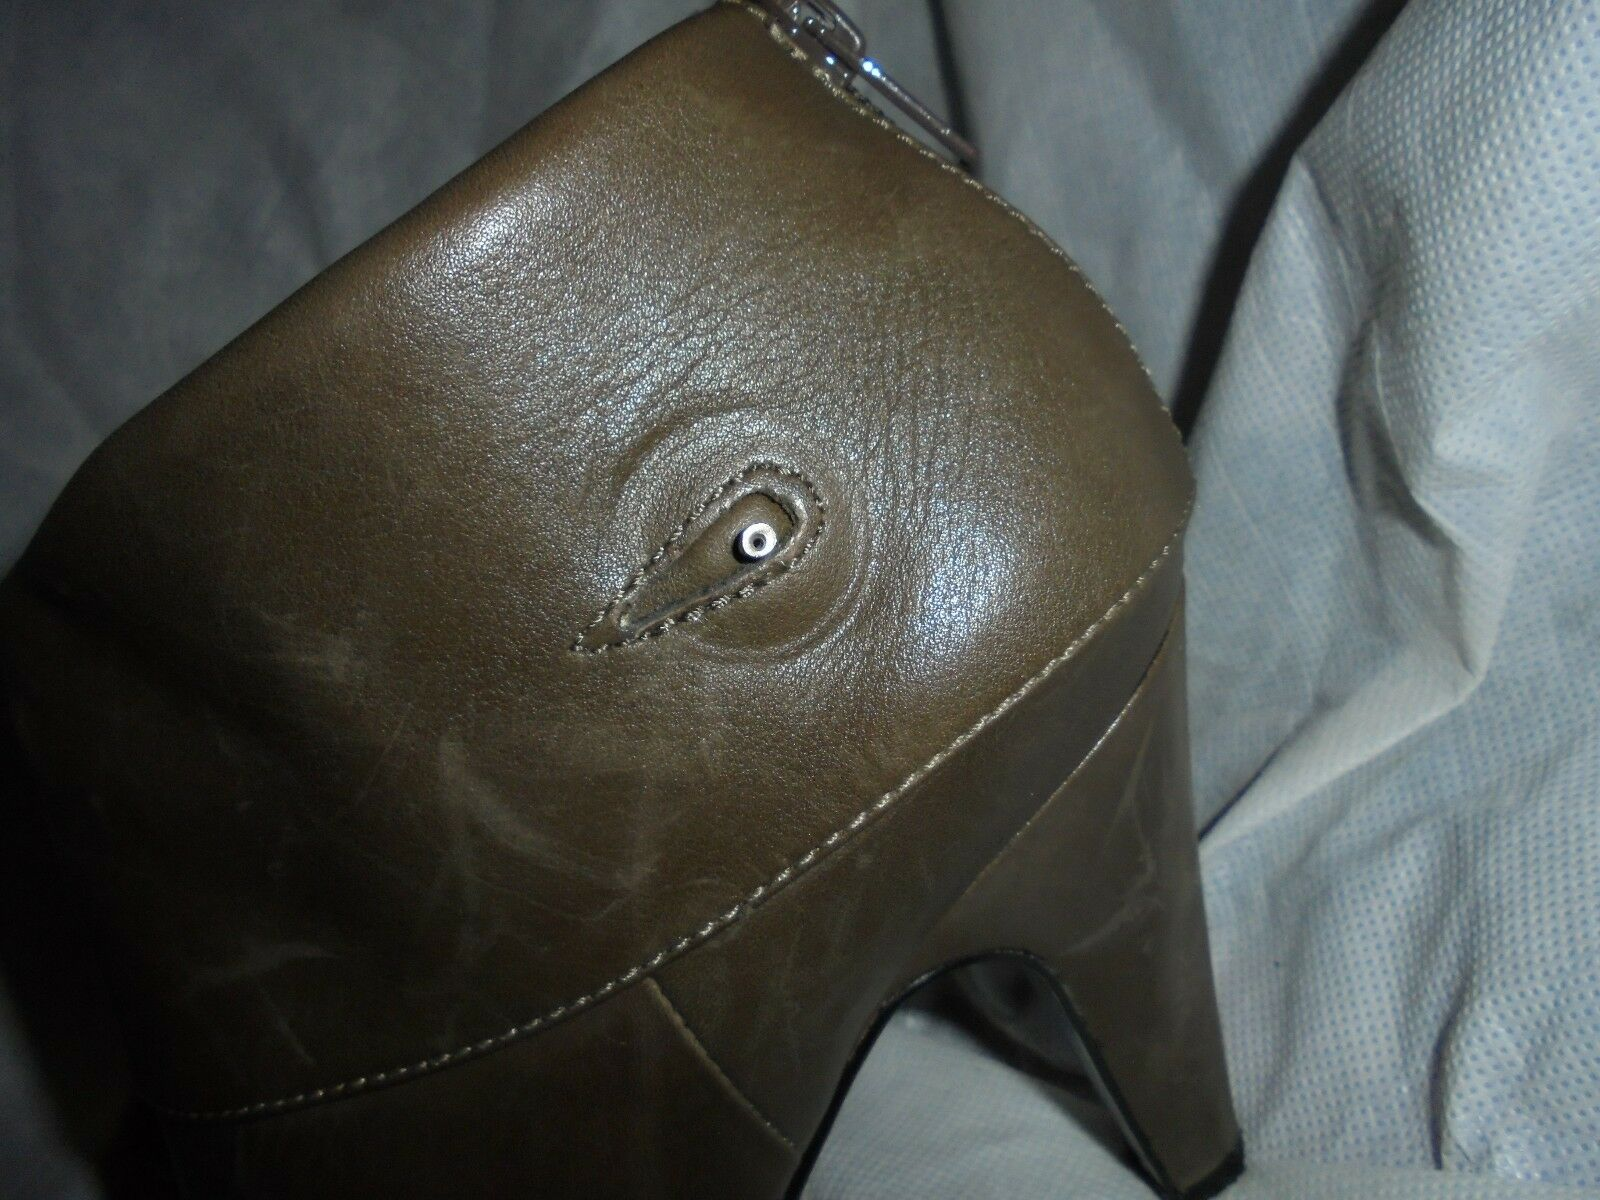 ASH LADIES WOMEN OLIVE LEATHER ZIP UP KNEE HIGH BOOT 37 SIZE UK 4 EU 37 BOOT  VGC 38e8a0